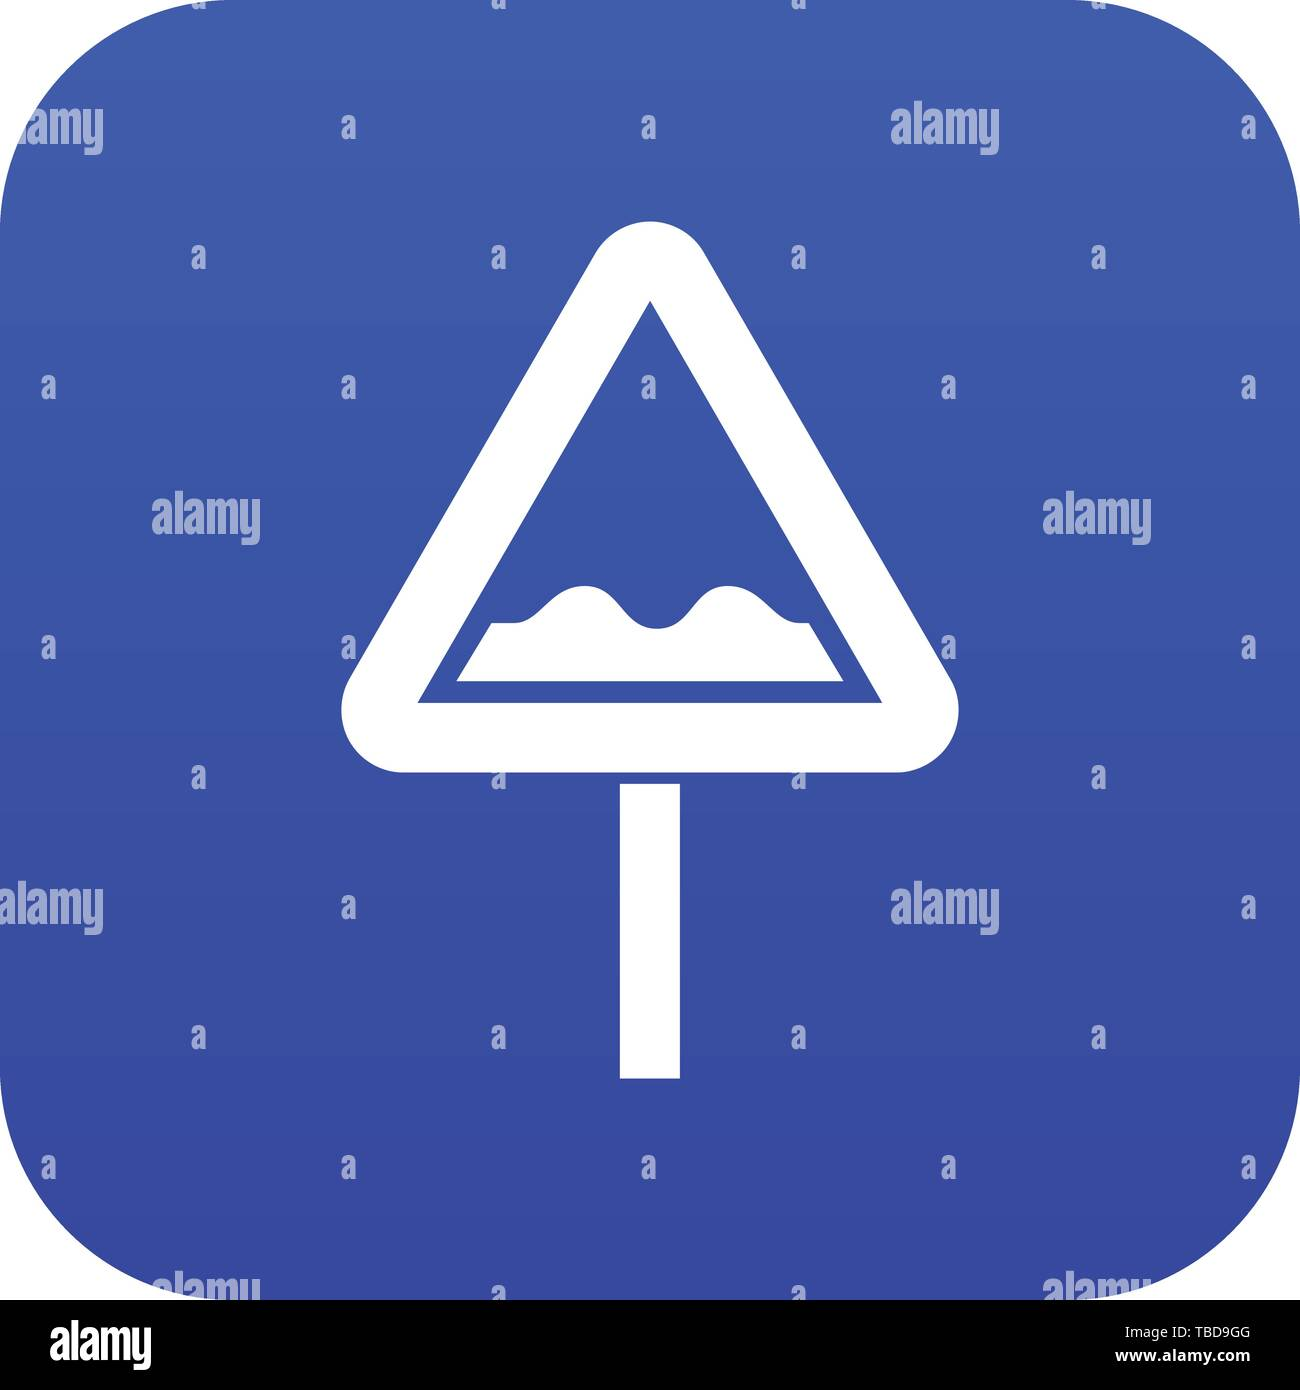 Uneven triangular road sign icon digital blue - Stock Image